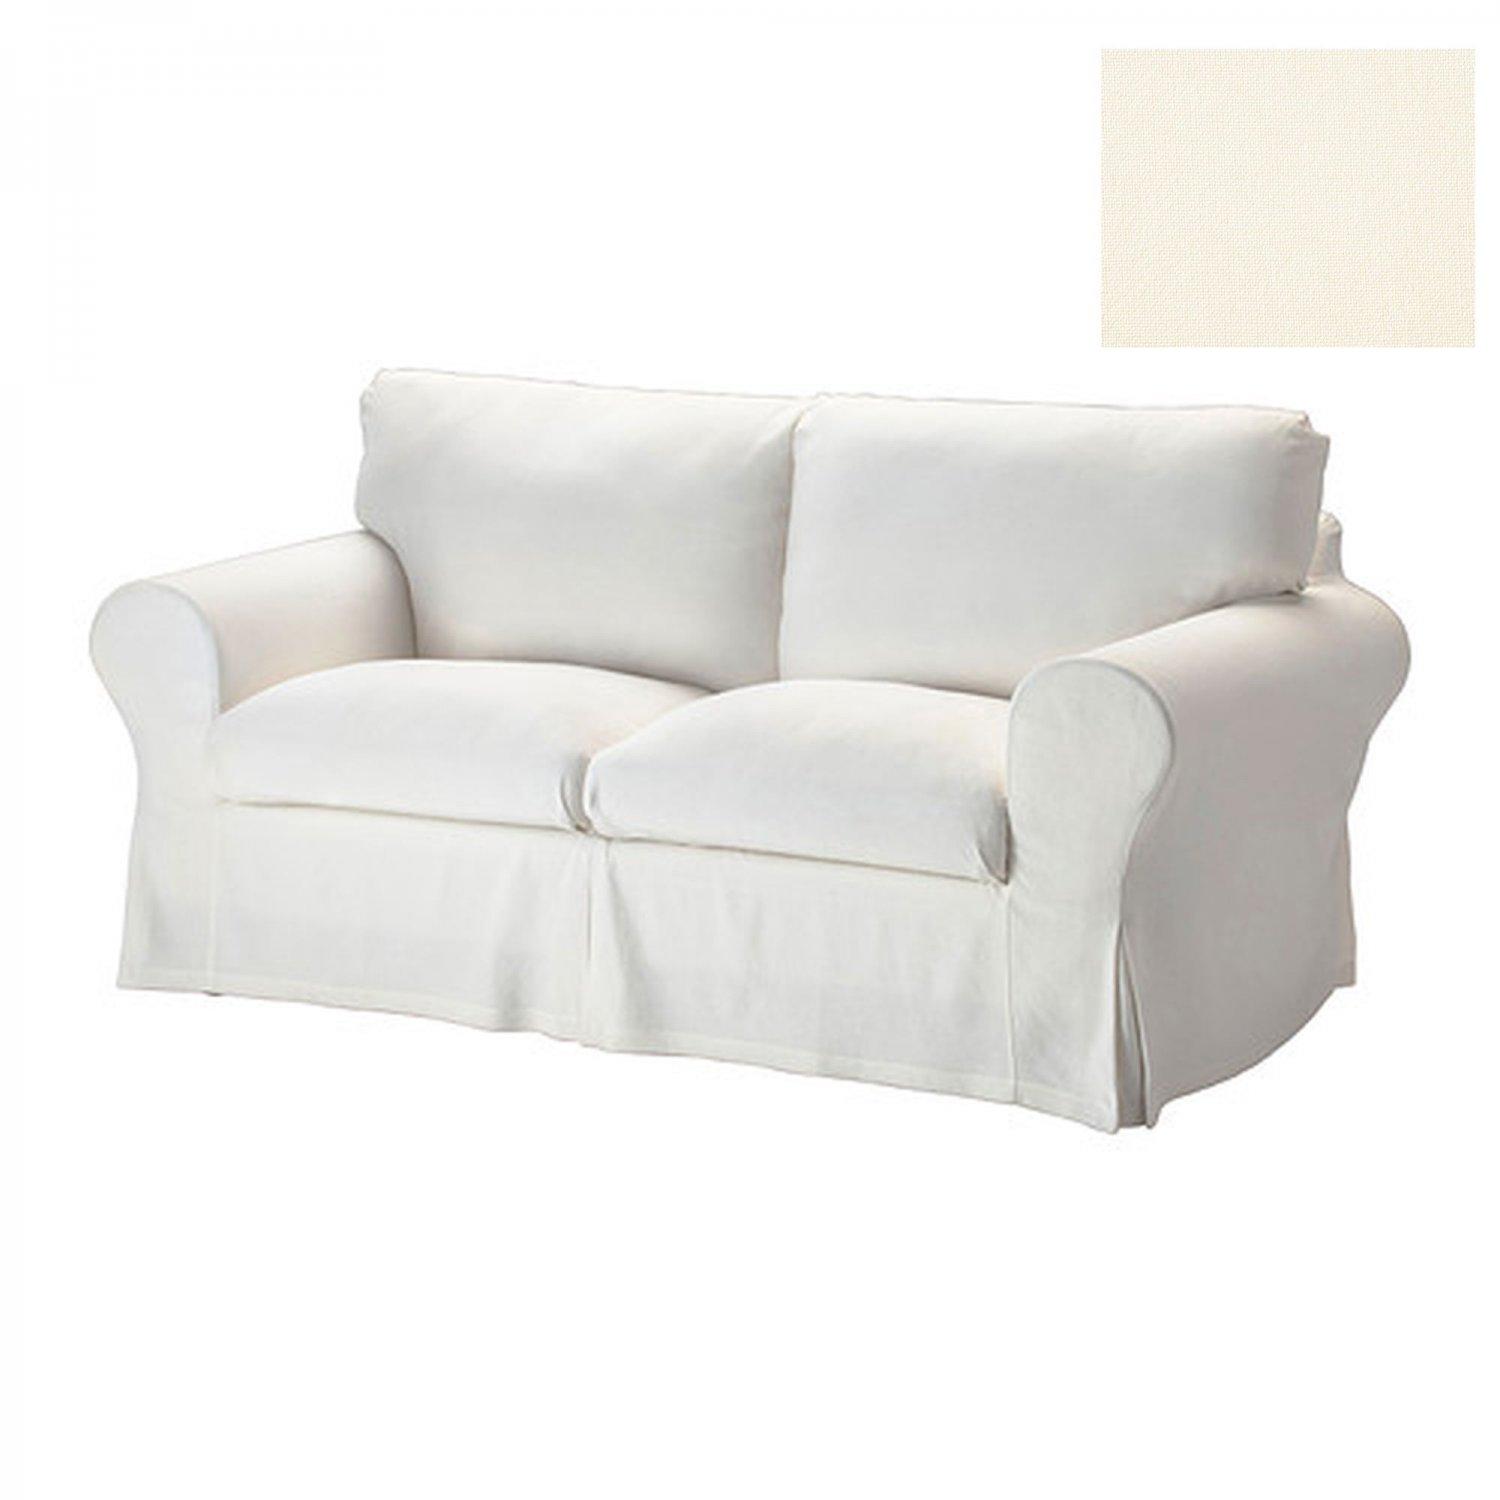 Ikea ektorp 2 seat sofa slipcover loveseat cover stenasa white off white sten sa linen blend Couch and loveseat covers